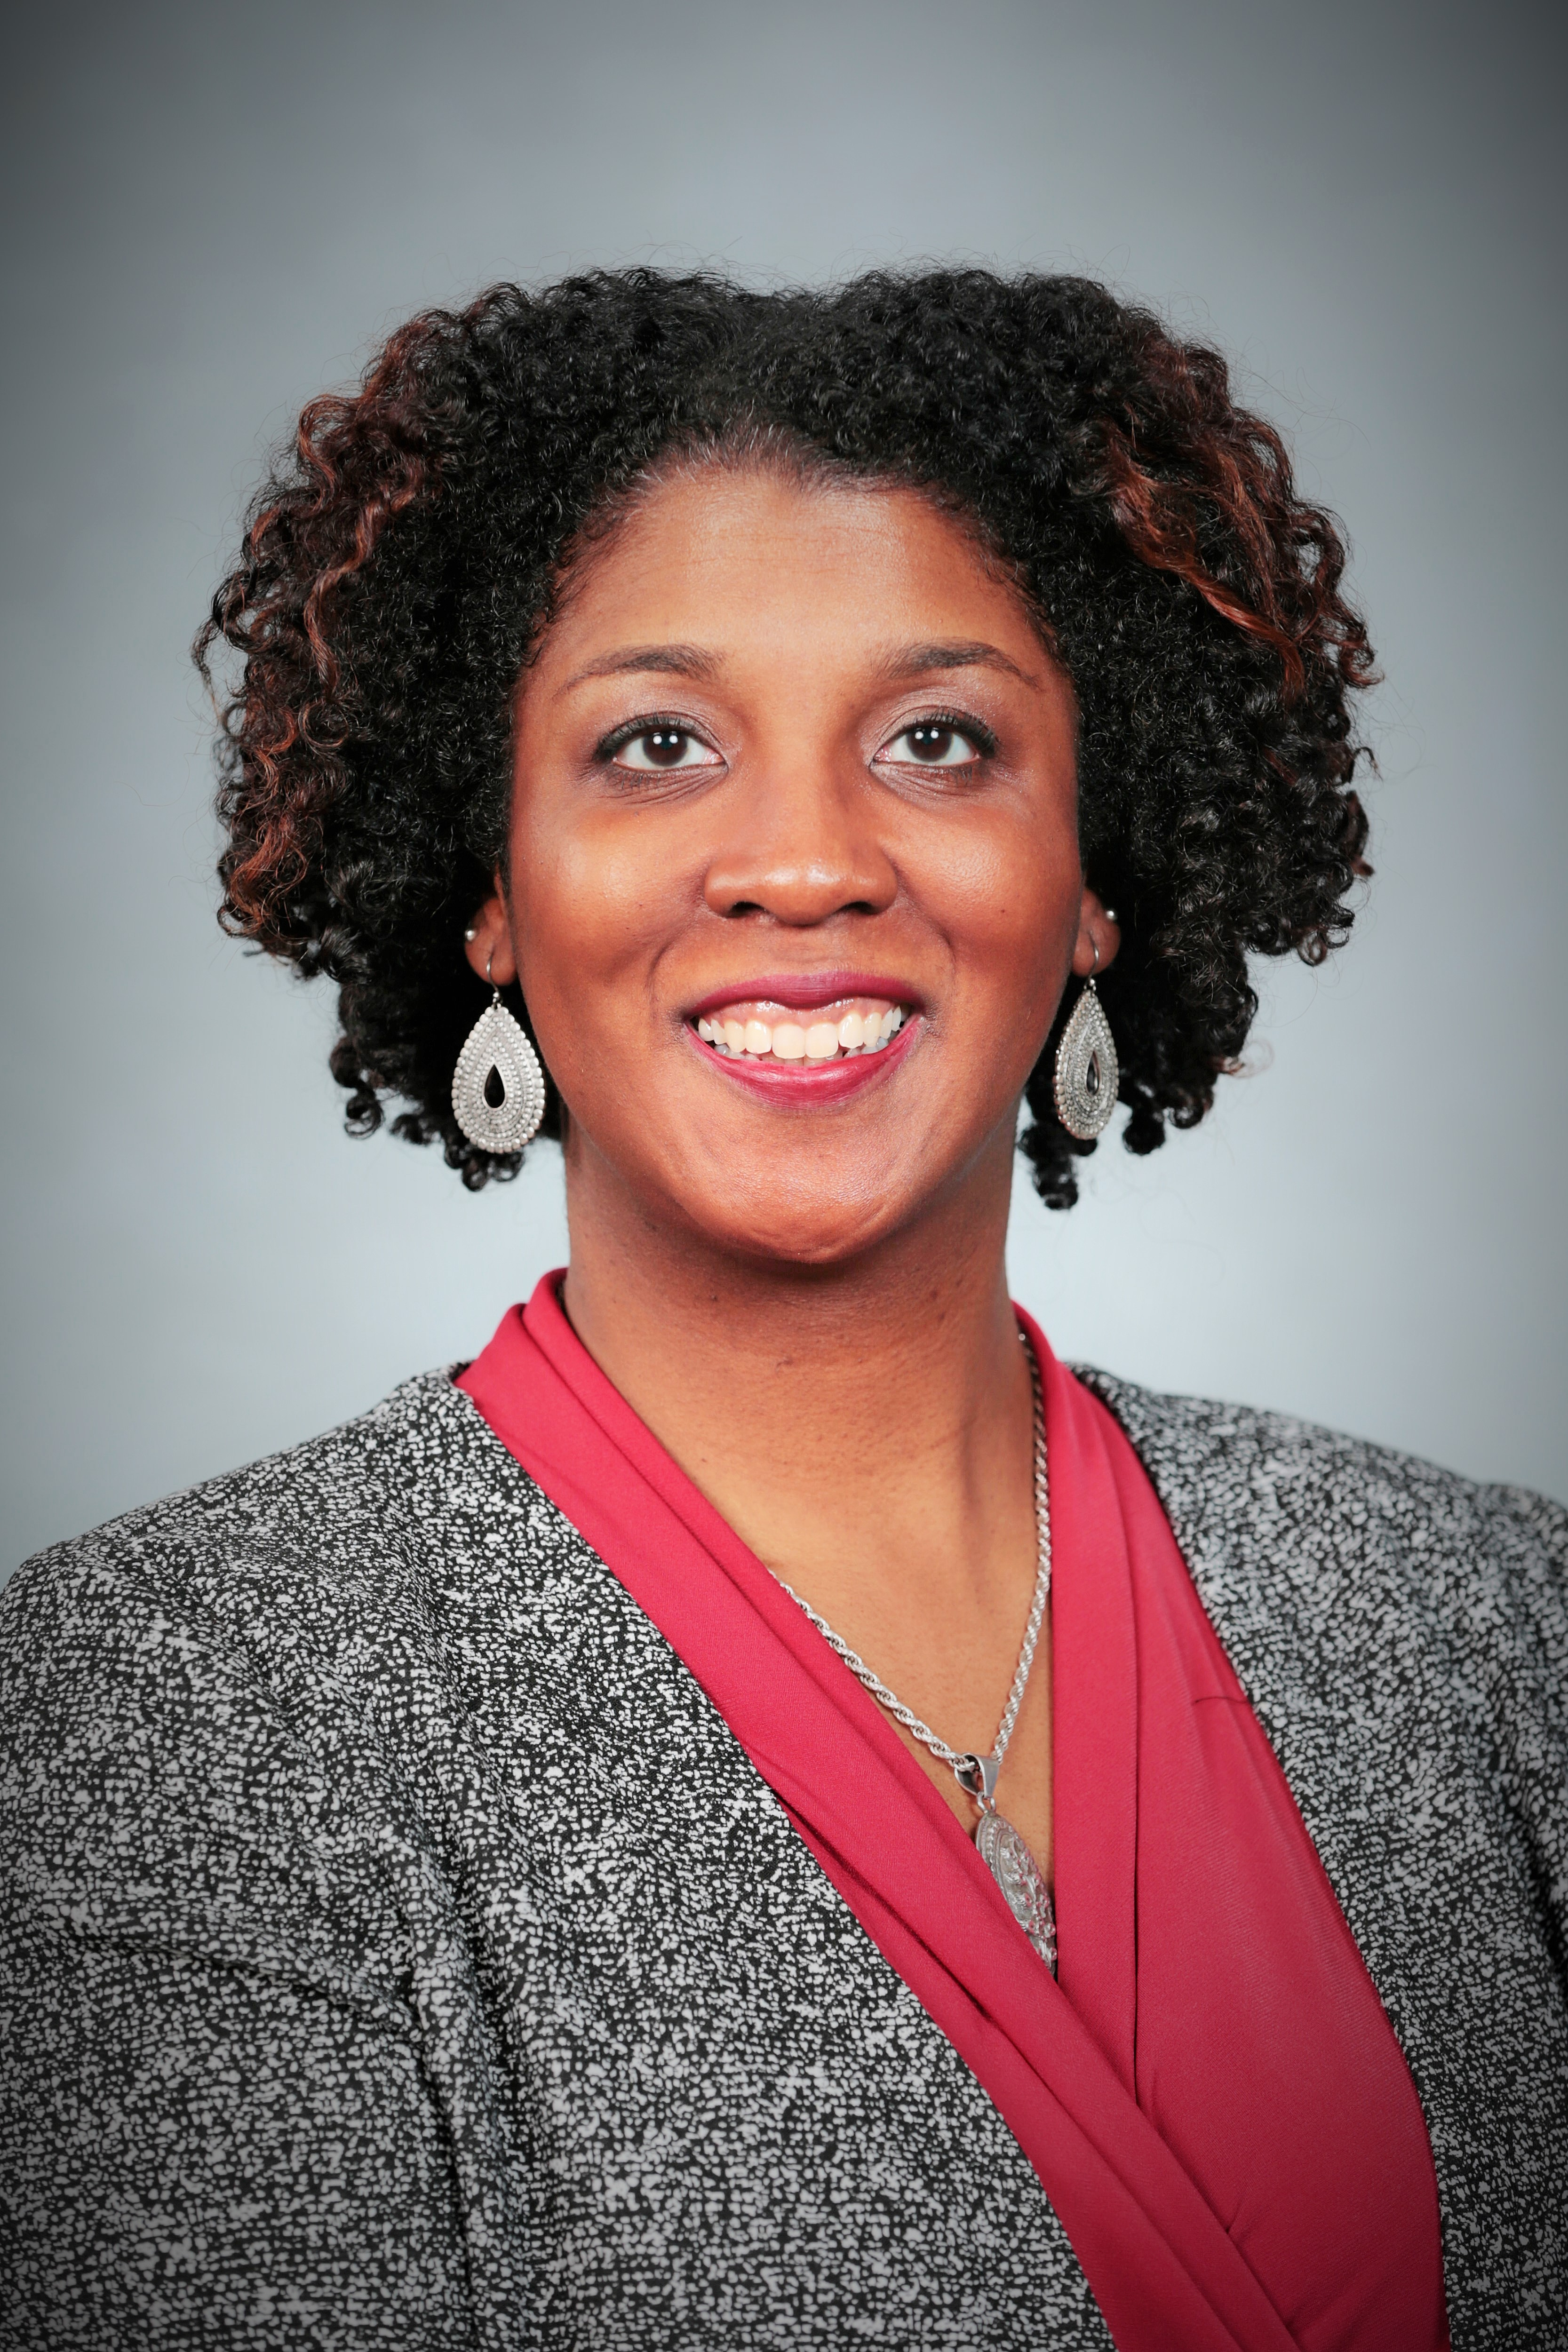 Rabekah Stewart, Ph.D. Executive Director, TRIO Student Support Services